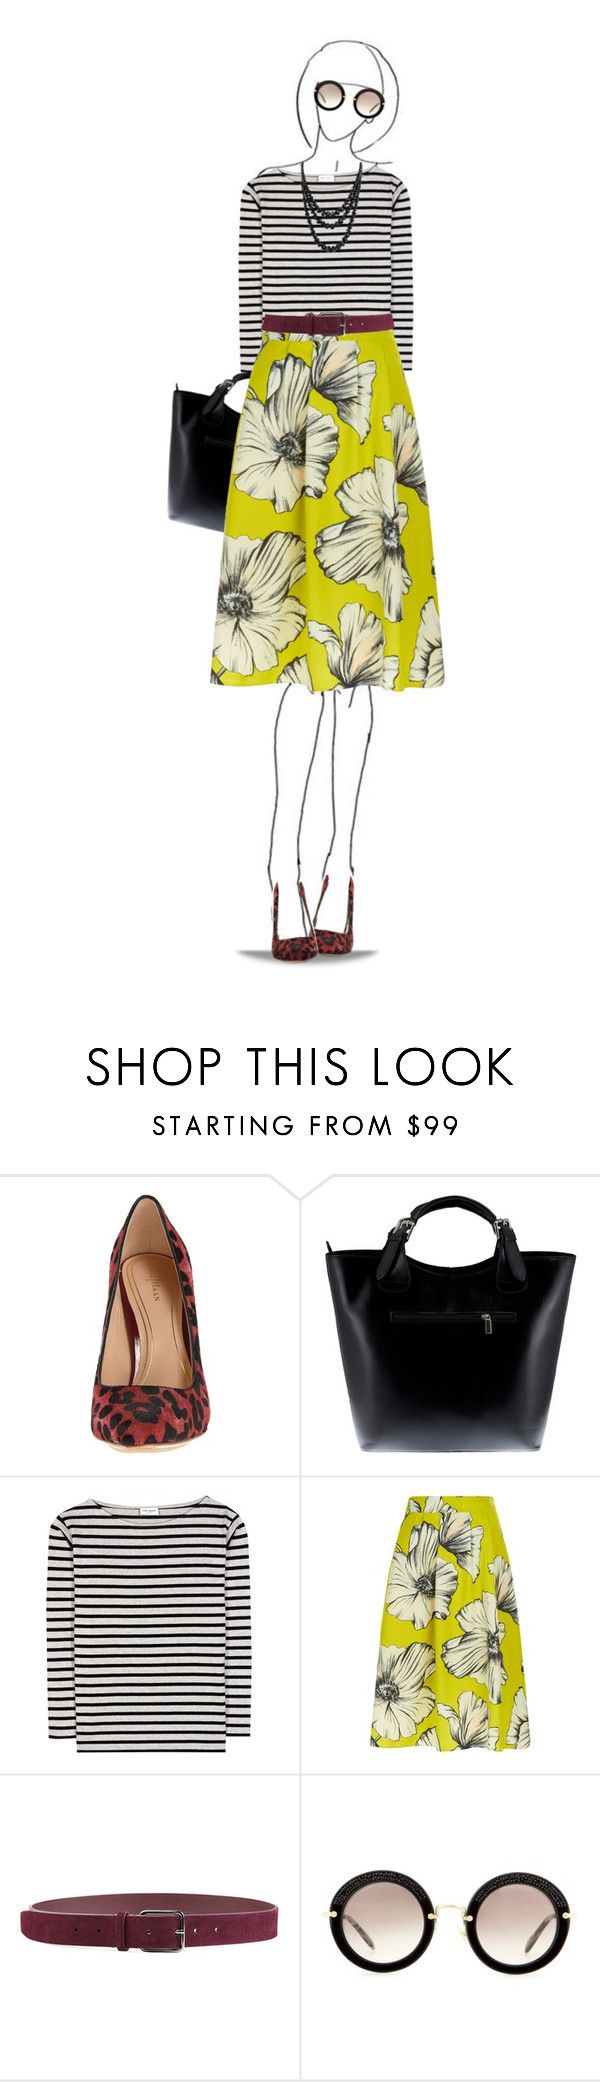 """""""Yellow"""" by dawn-scott ❤ liked on Polyvore featuring Cole Haan, Massimo Castelli, Yves Saint Laurent, Monsoon, Jil Sander, Miu Miu and Bling Jewelry"""